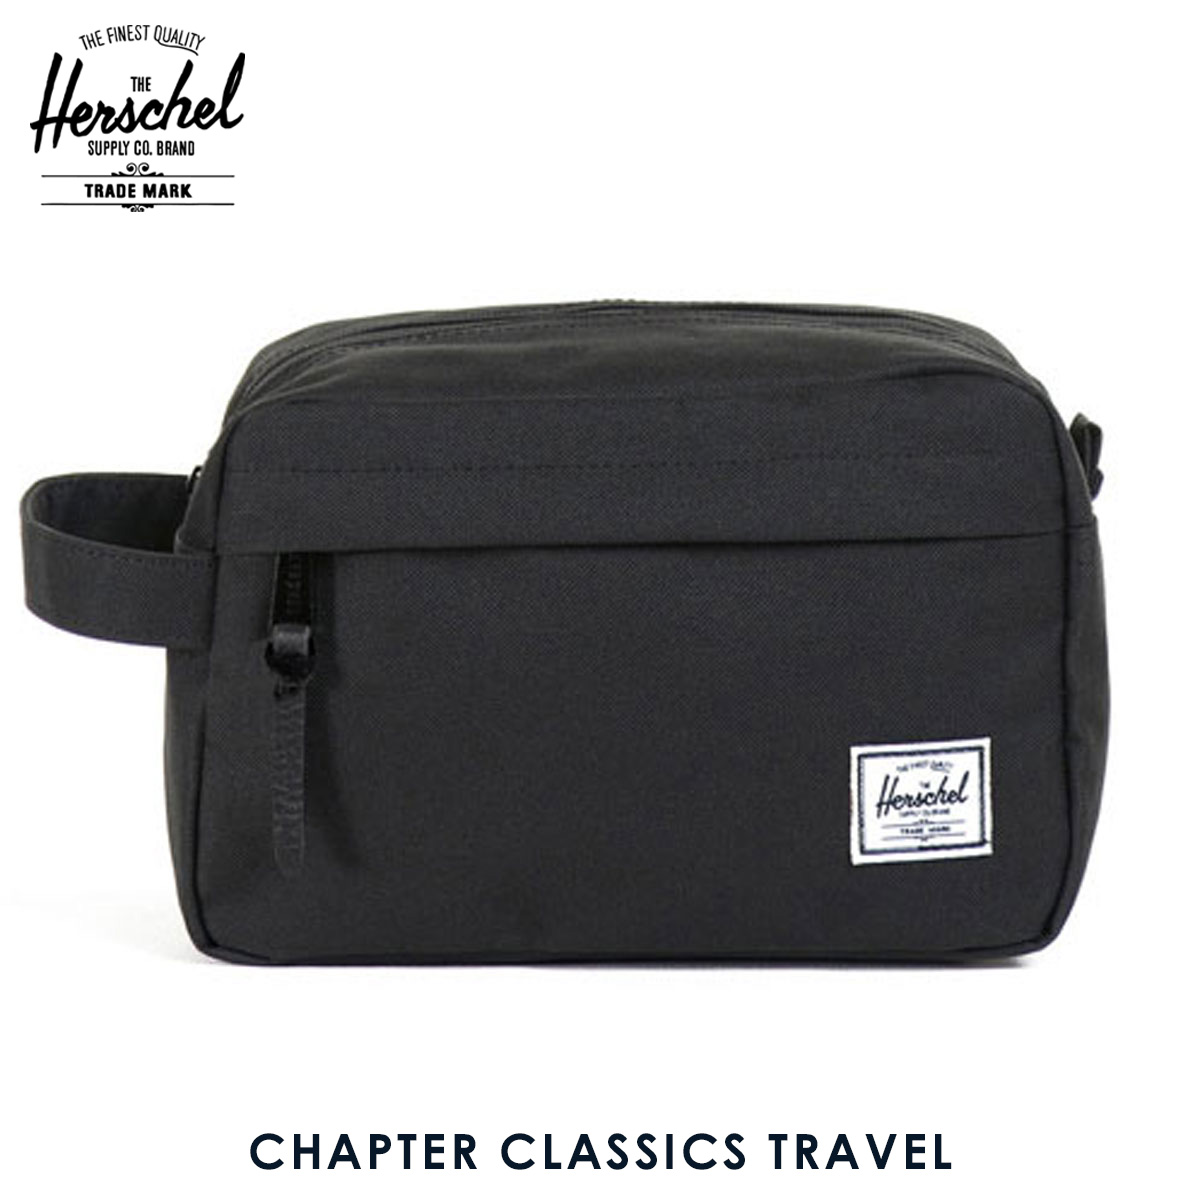 f6db64acb81 Rakuten ichiba shop mixon herschel bag chapter classics travel os black  rakuten global market jpg 1200x1200